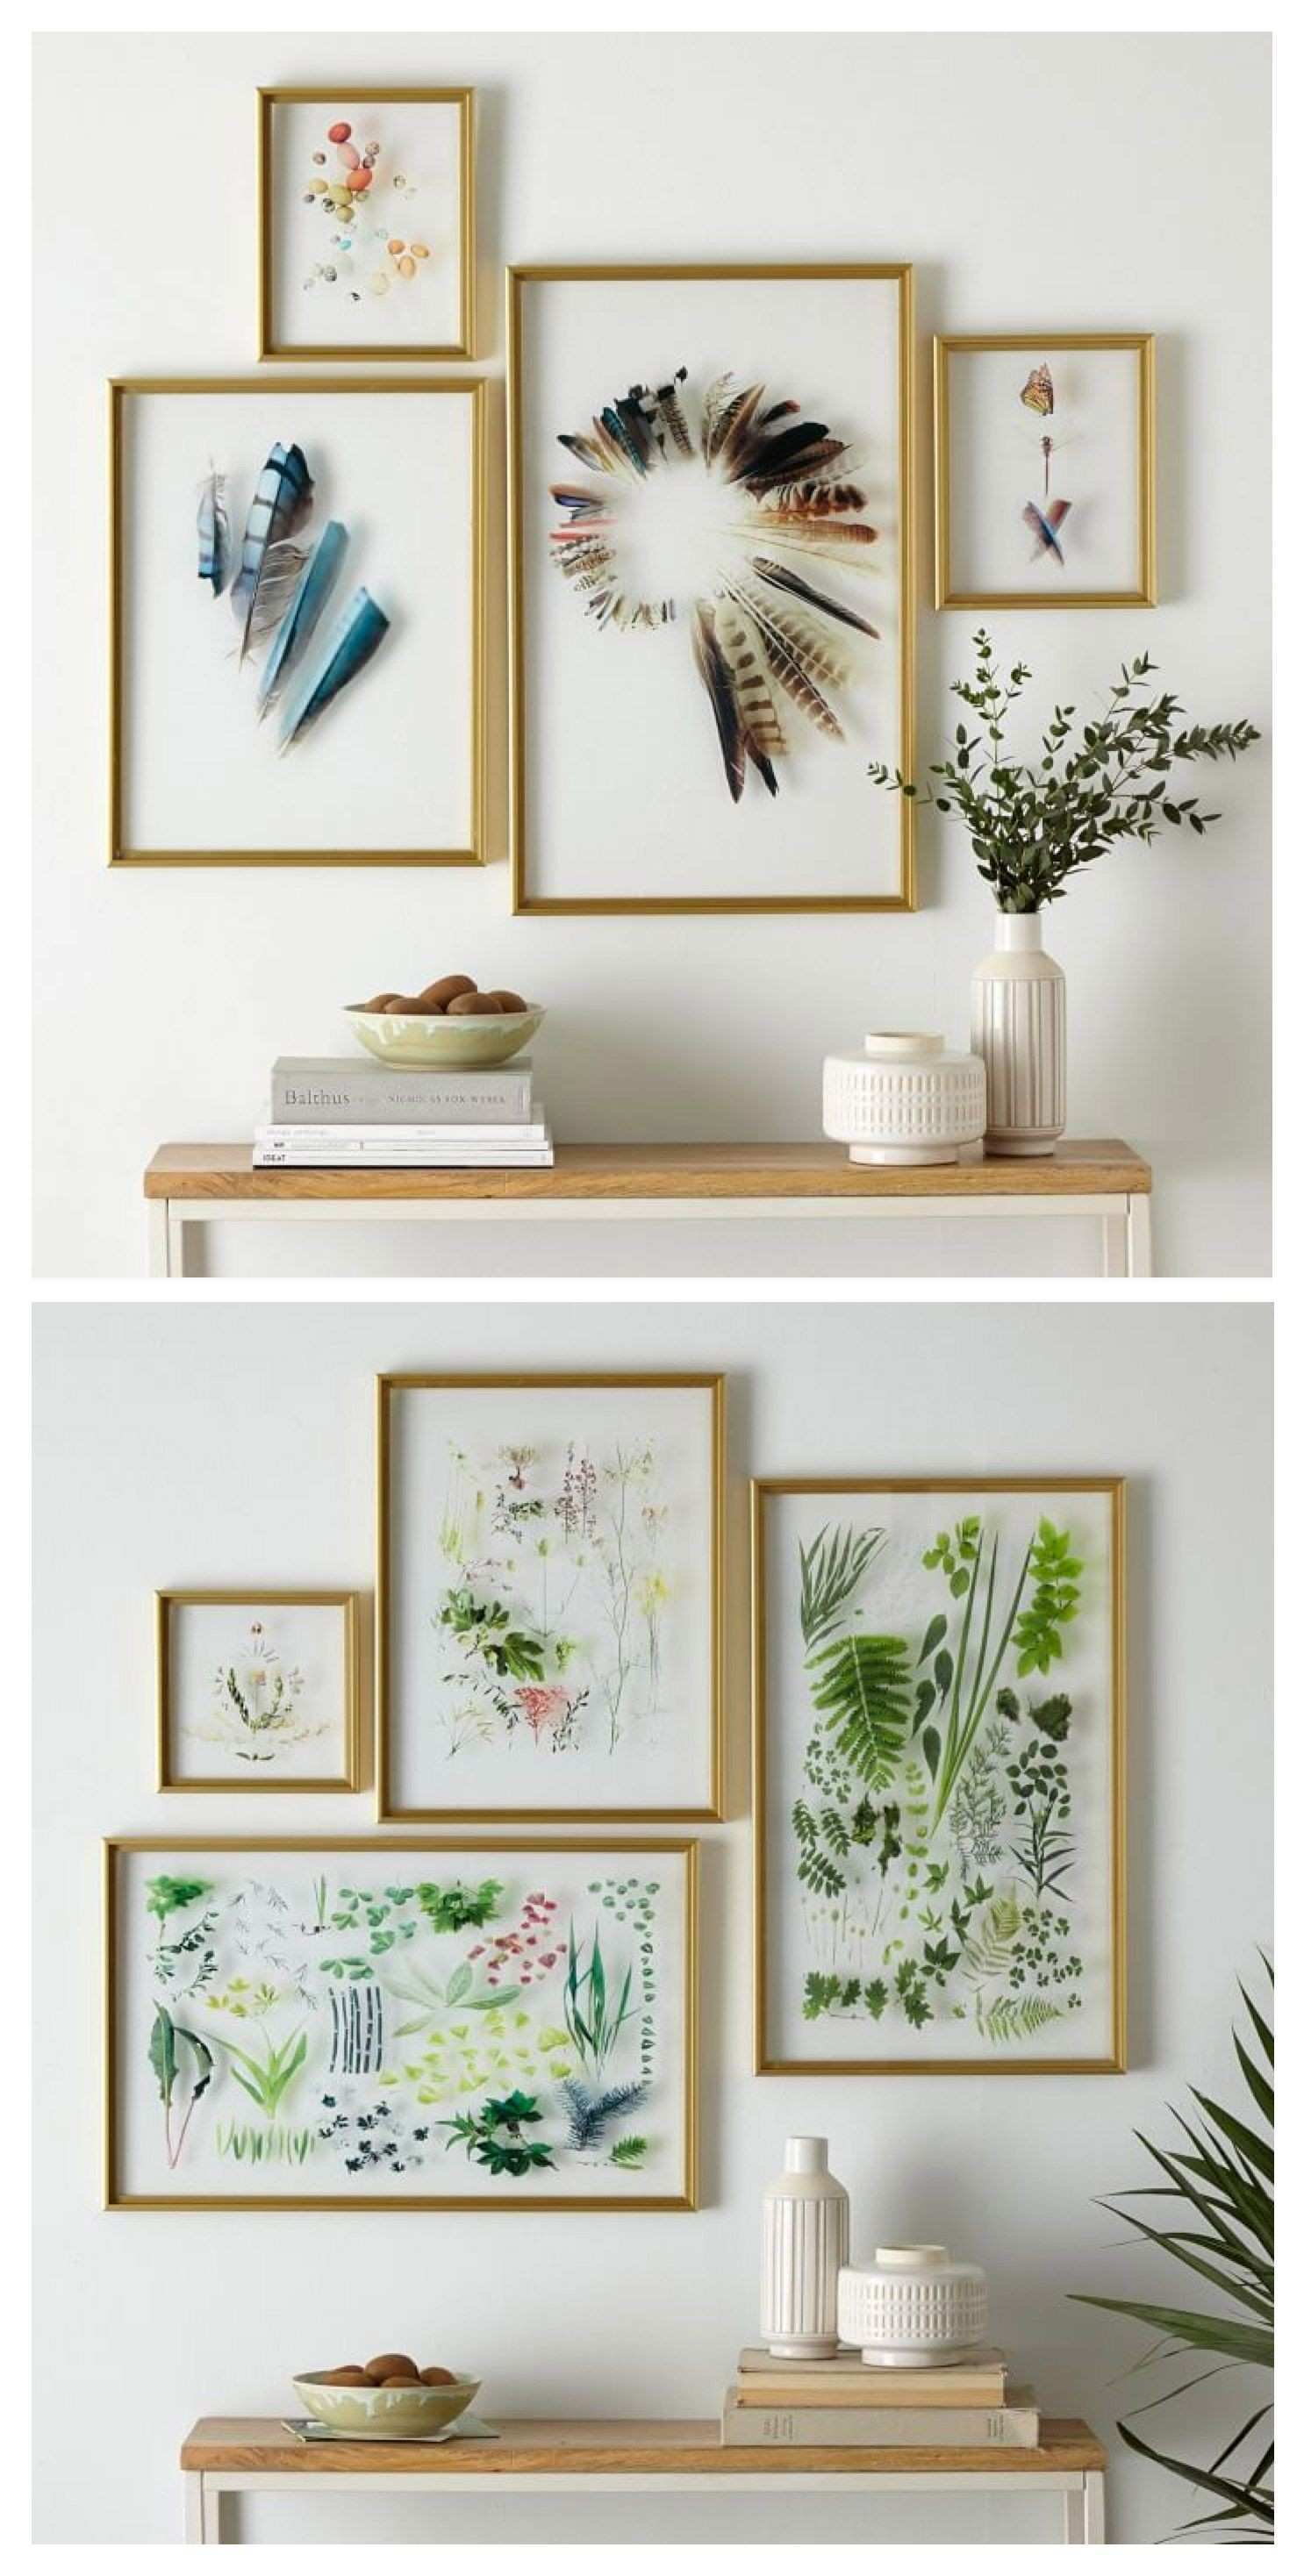 A collection of acrylic wall hangings using my STILL images was